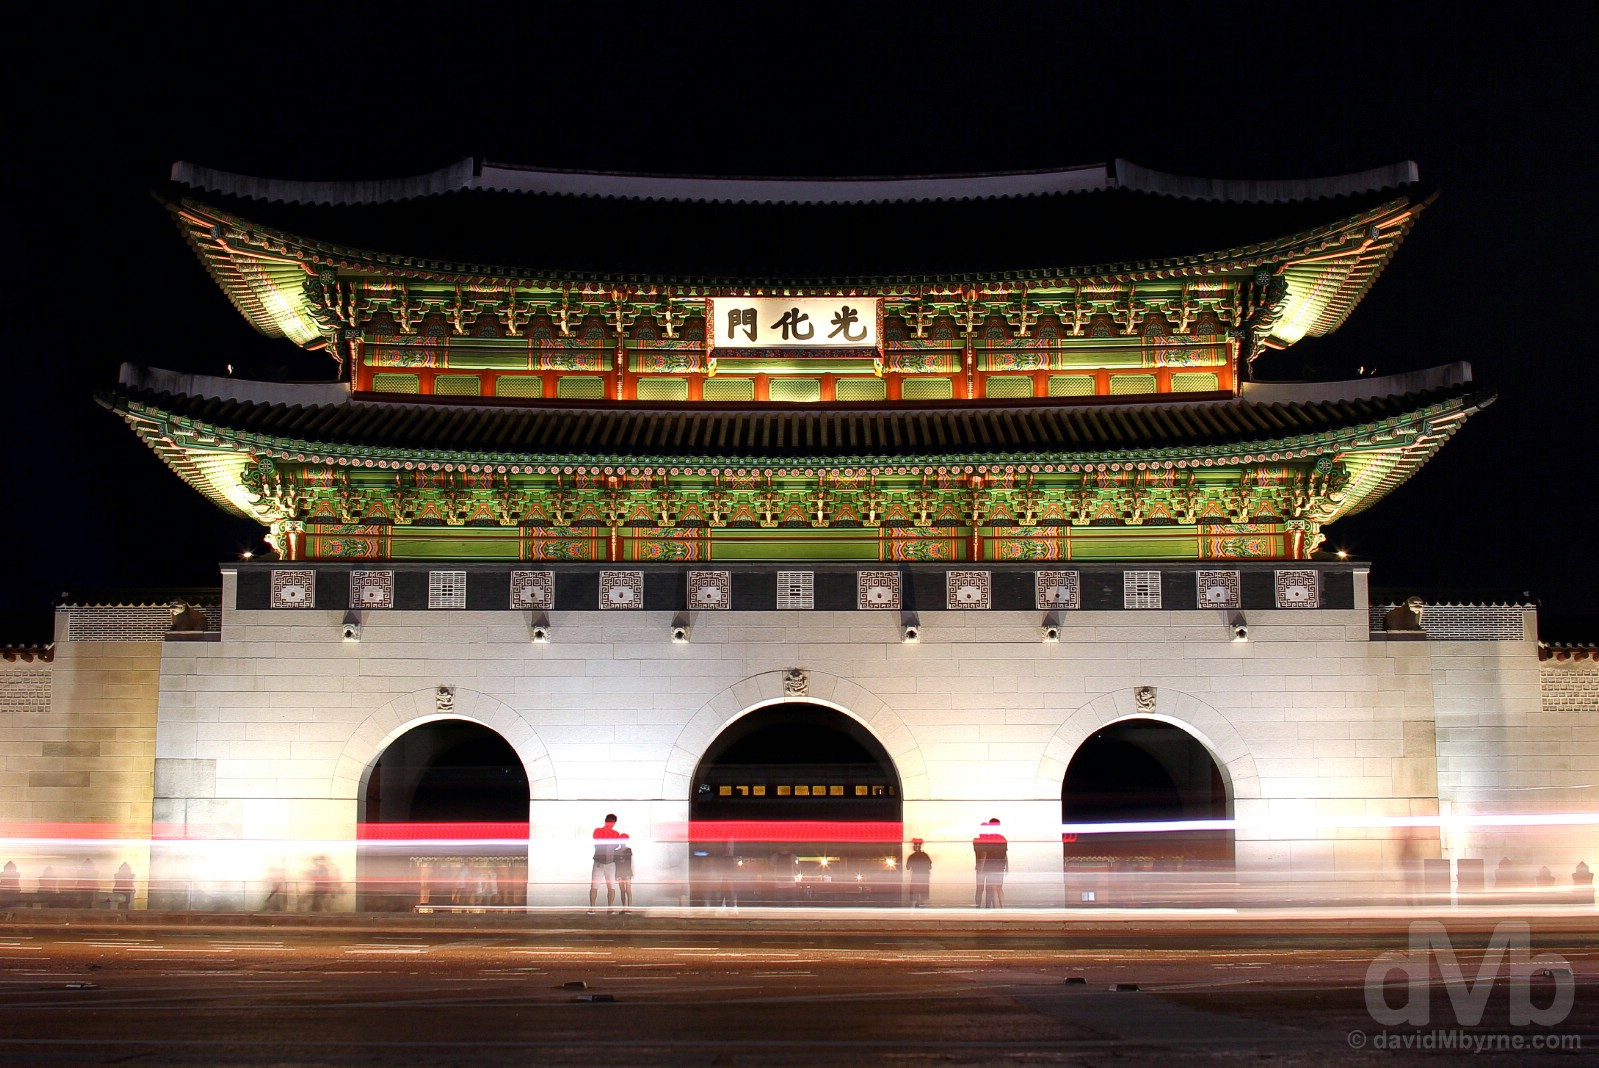 Gwanghwamun Gate, the restored main gate of Gyeongbokgung Palace in Seoul, South Korea. July 26, 2017.